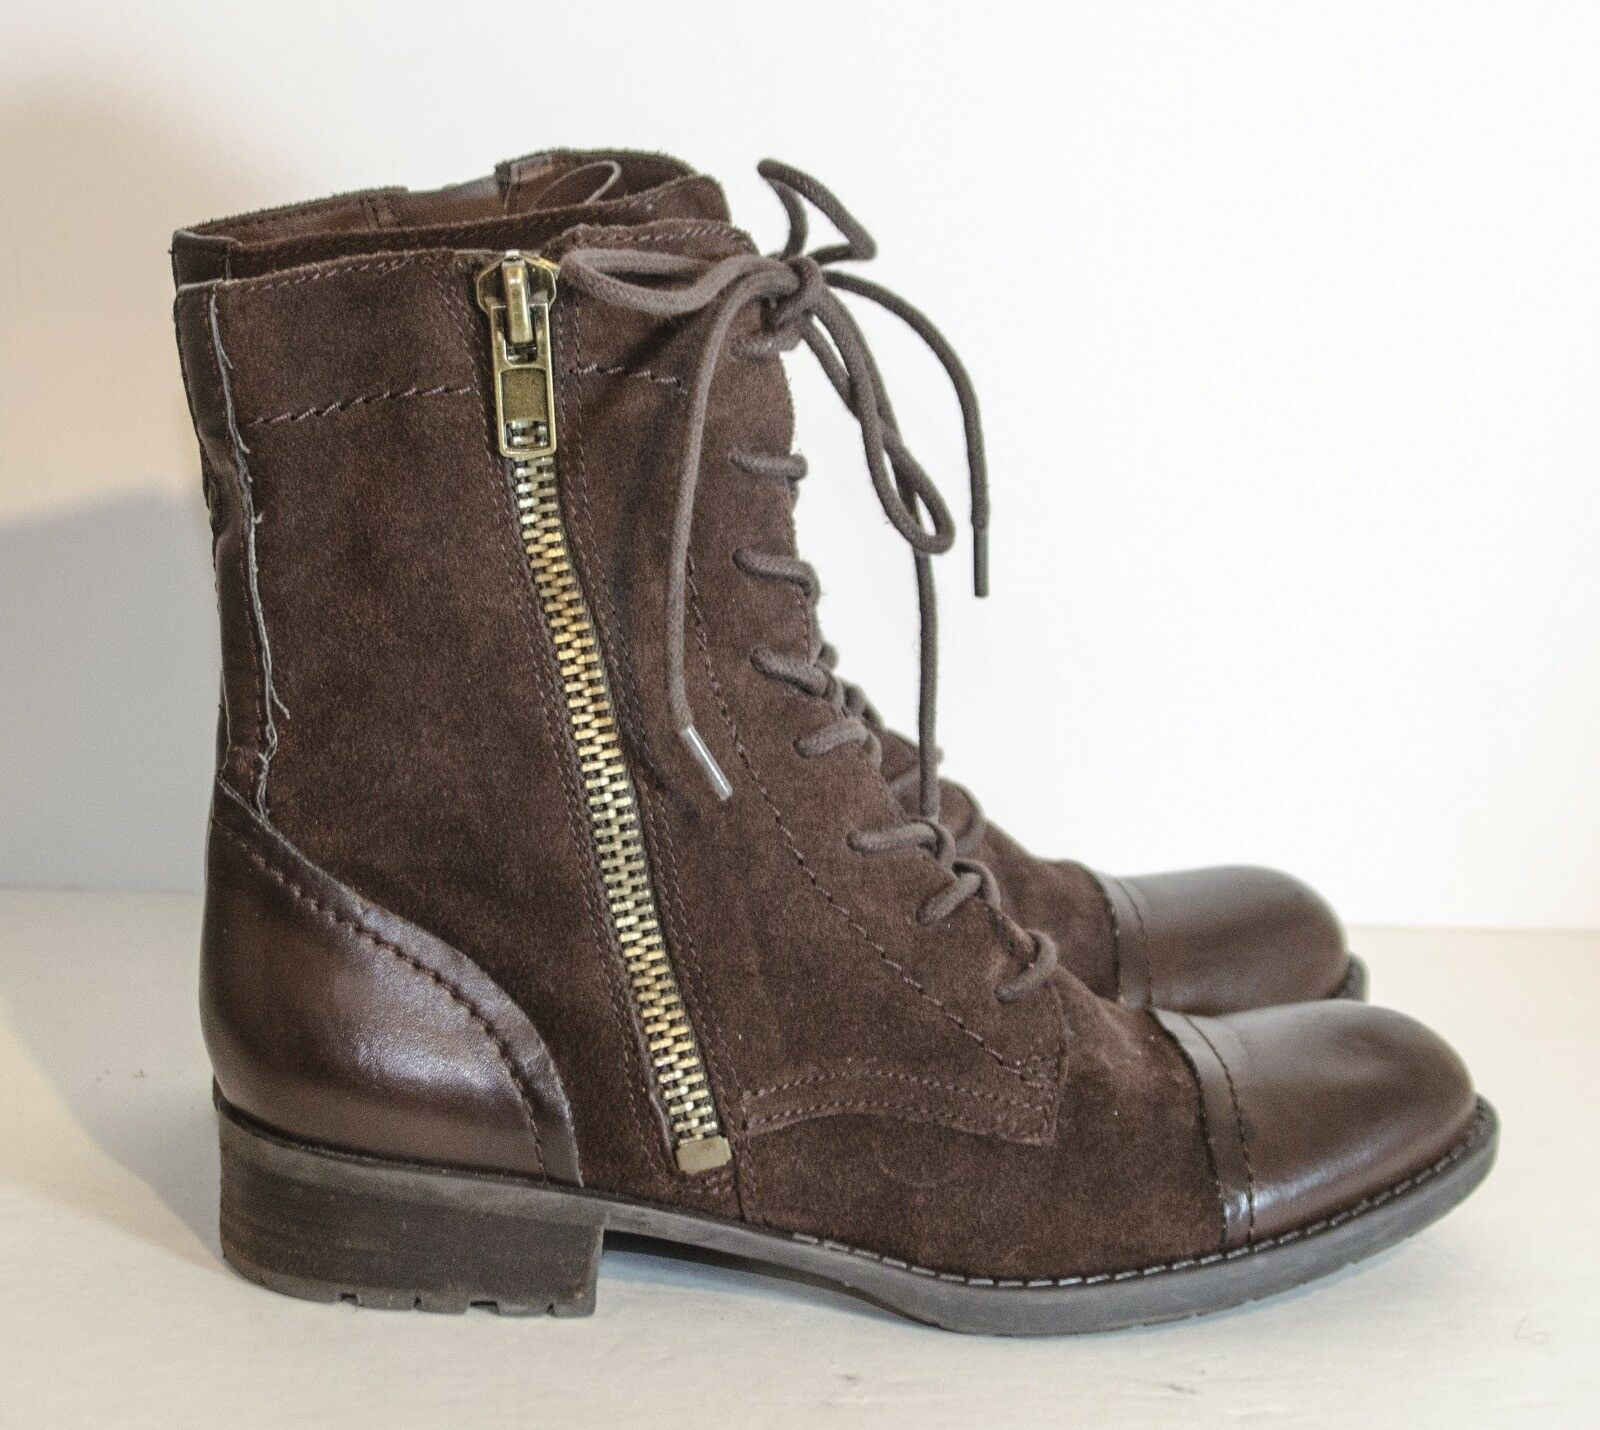 Franco Sarto Pura Leather Combat Boots Brown Leather Suede size 9.5M